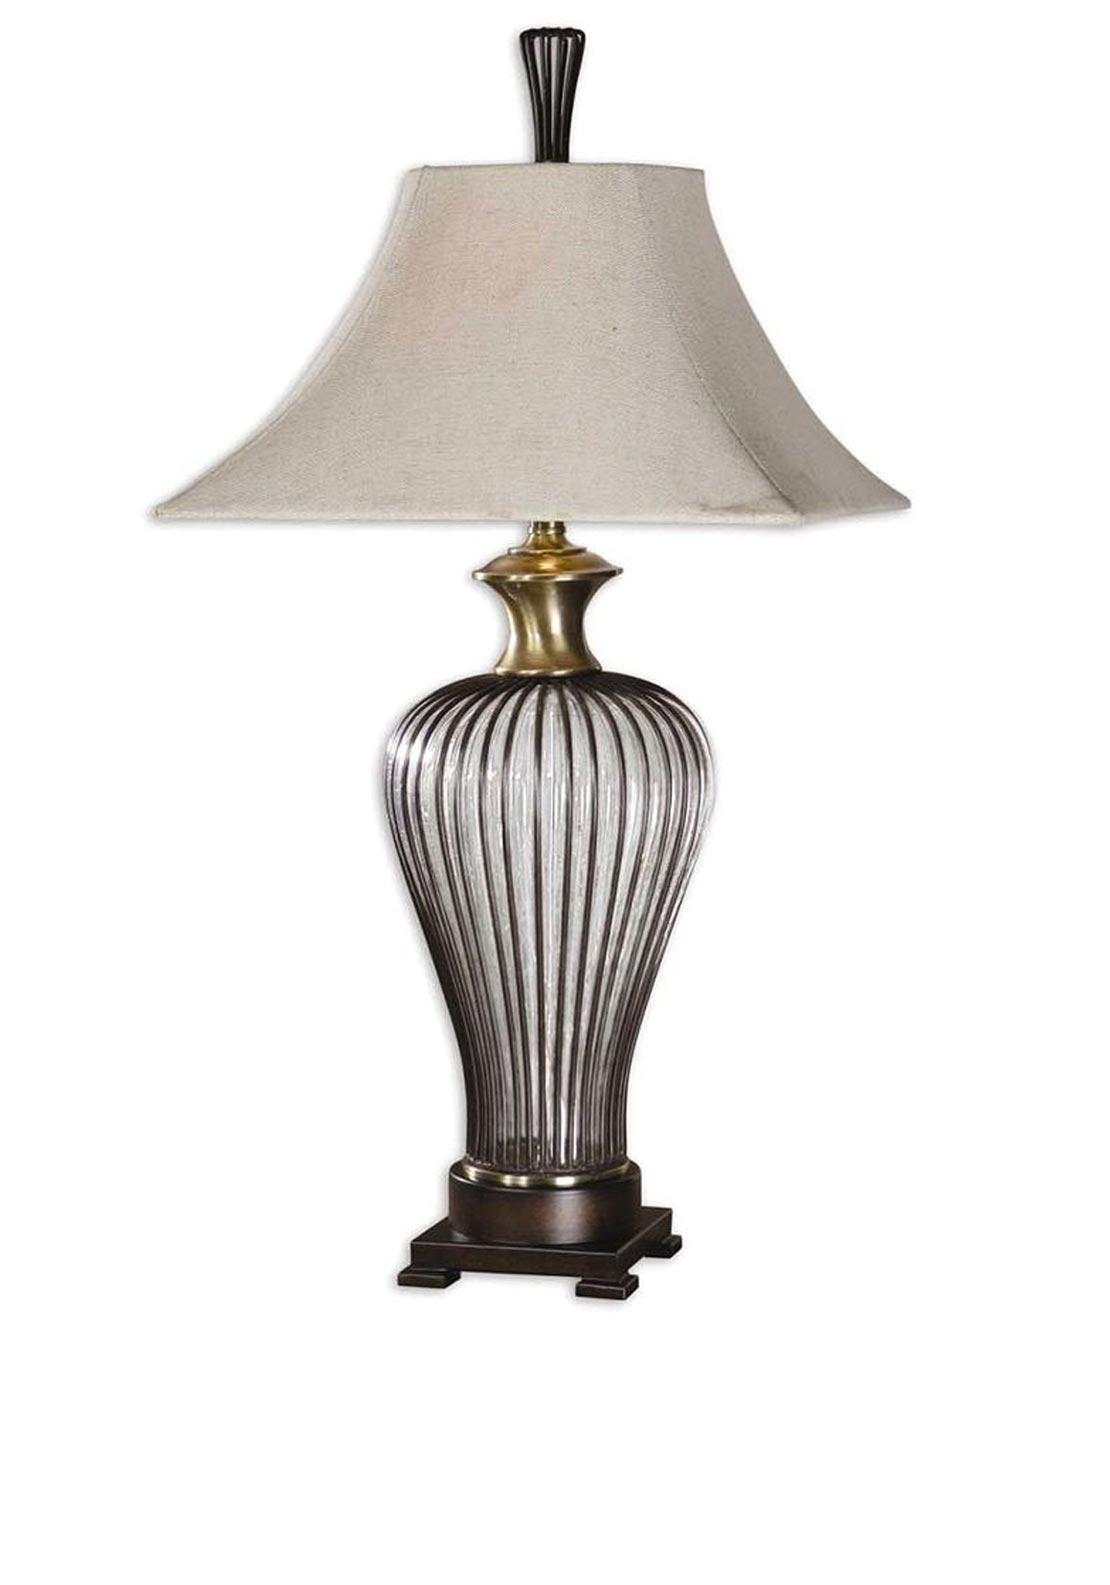 Mindy Brownes Stoughton Lamp and Shade